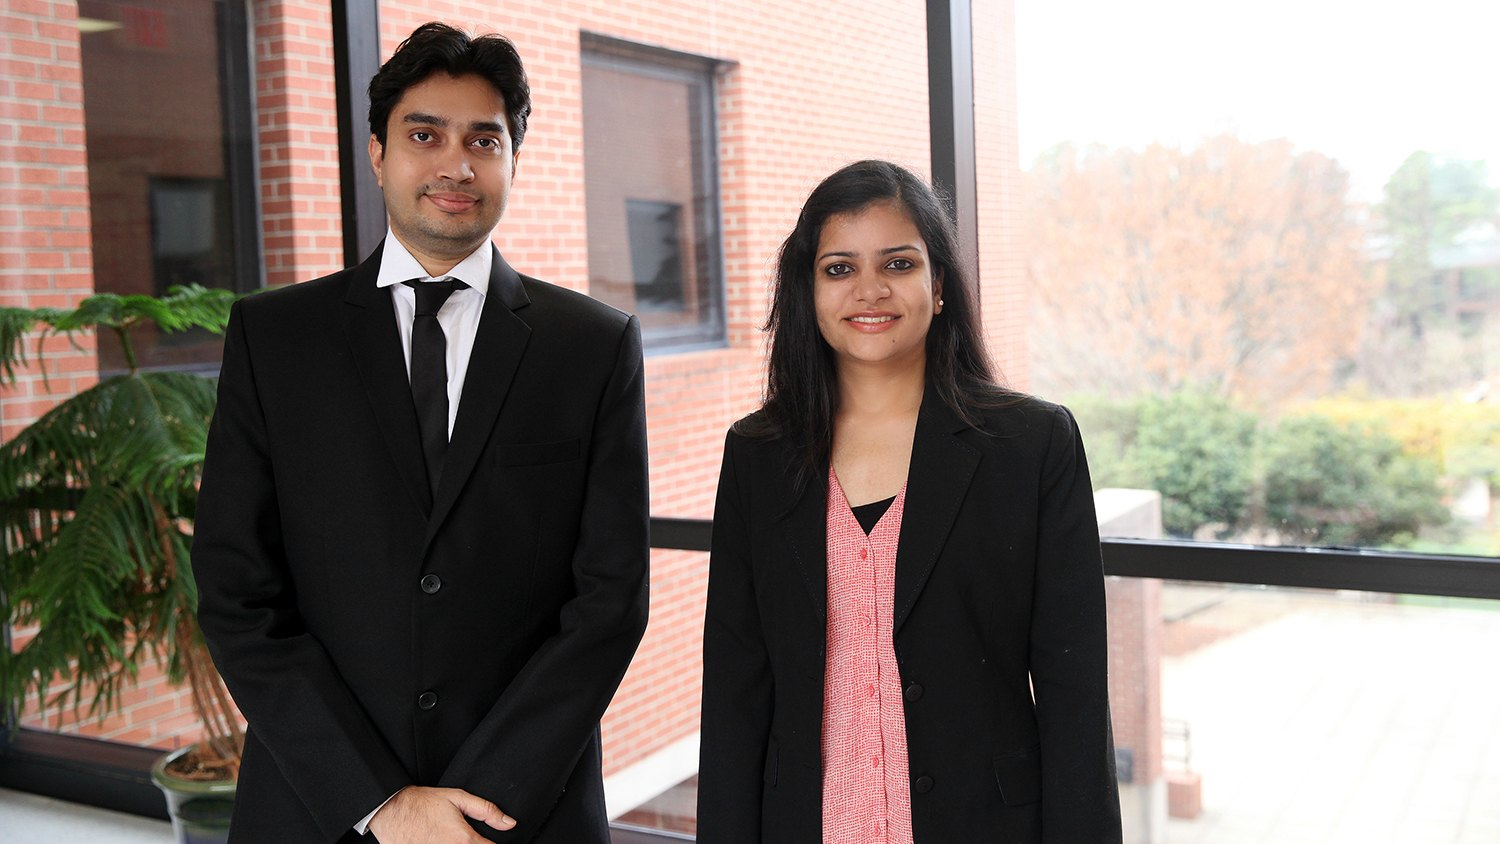 Tushar Bambharoliya and Radhika Vaid stand in front of window at NC State's College of Textiles